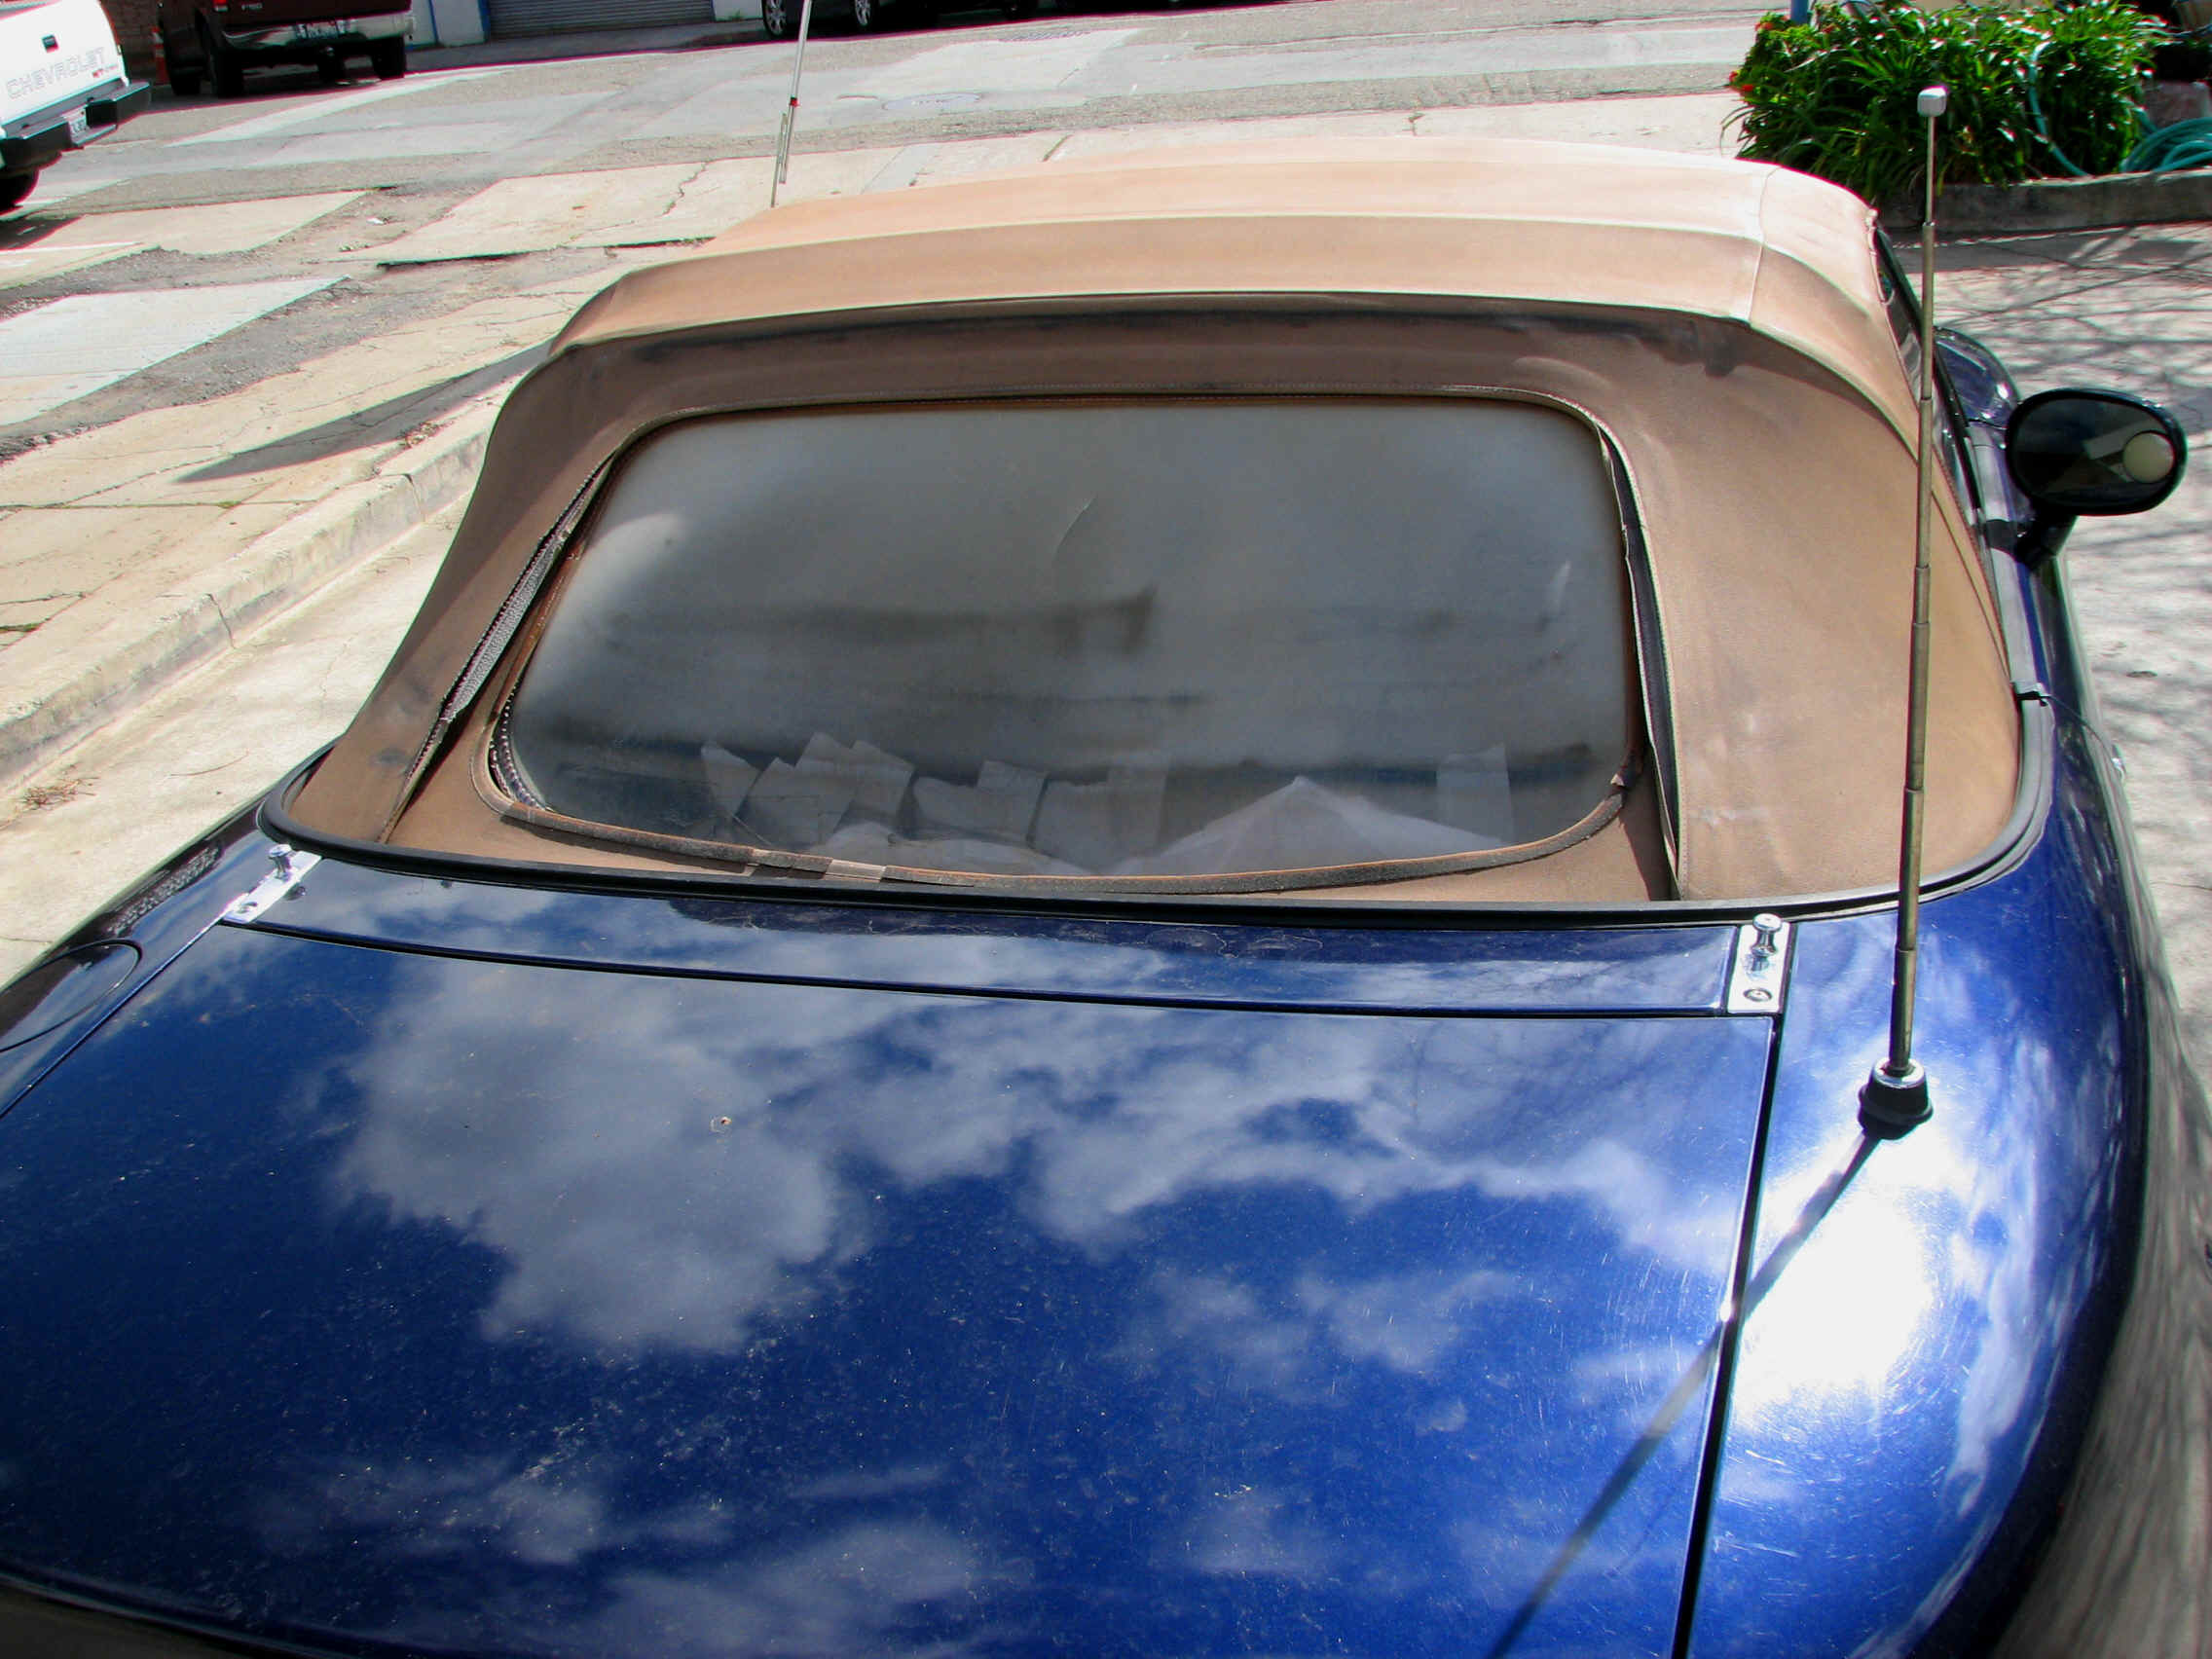 mazda miata 97 old top plastic window jpg 3283891 bytes